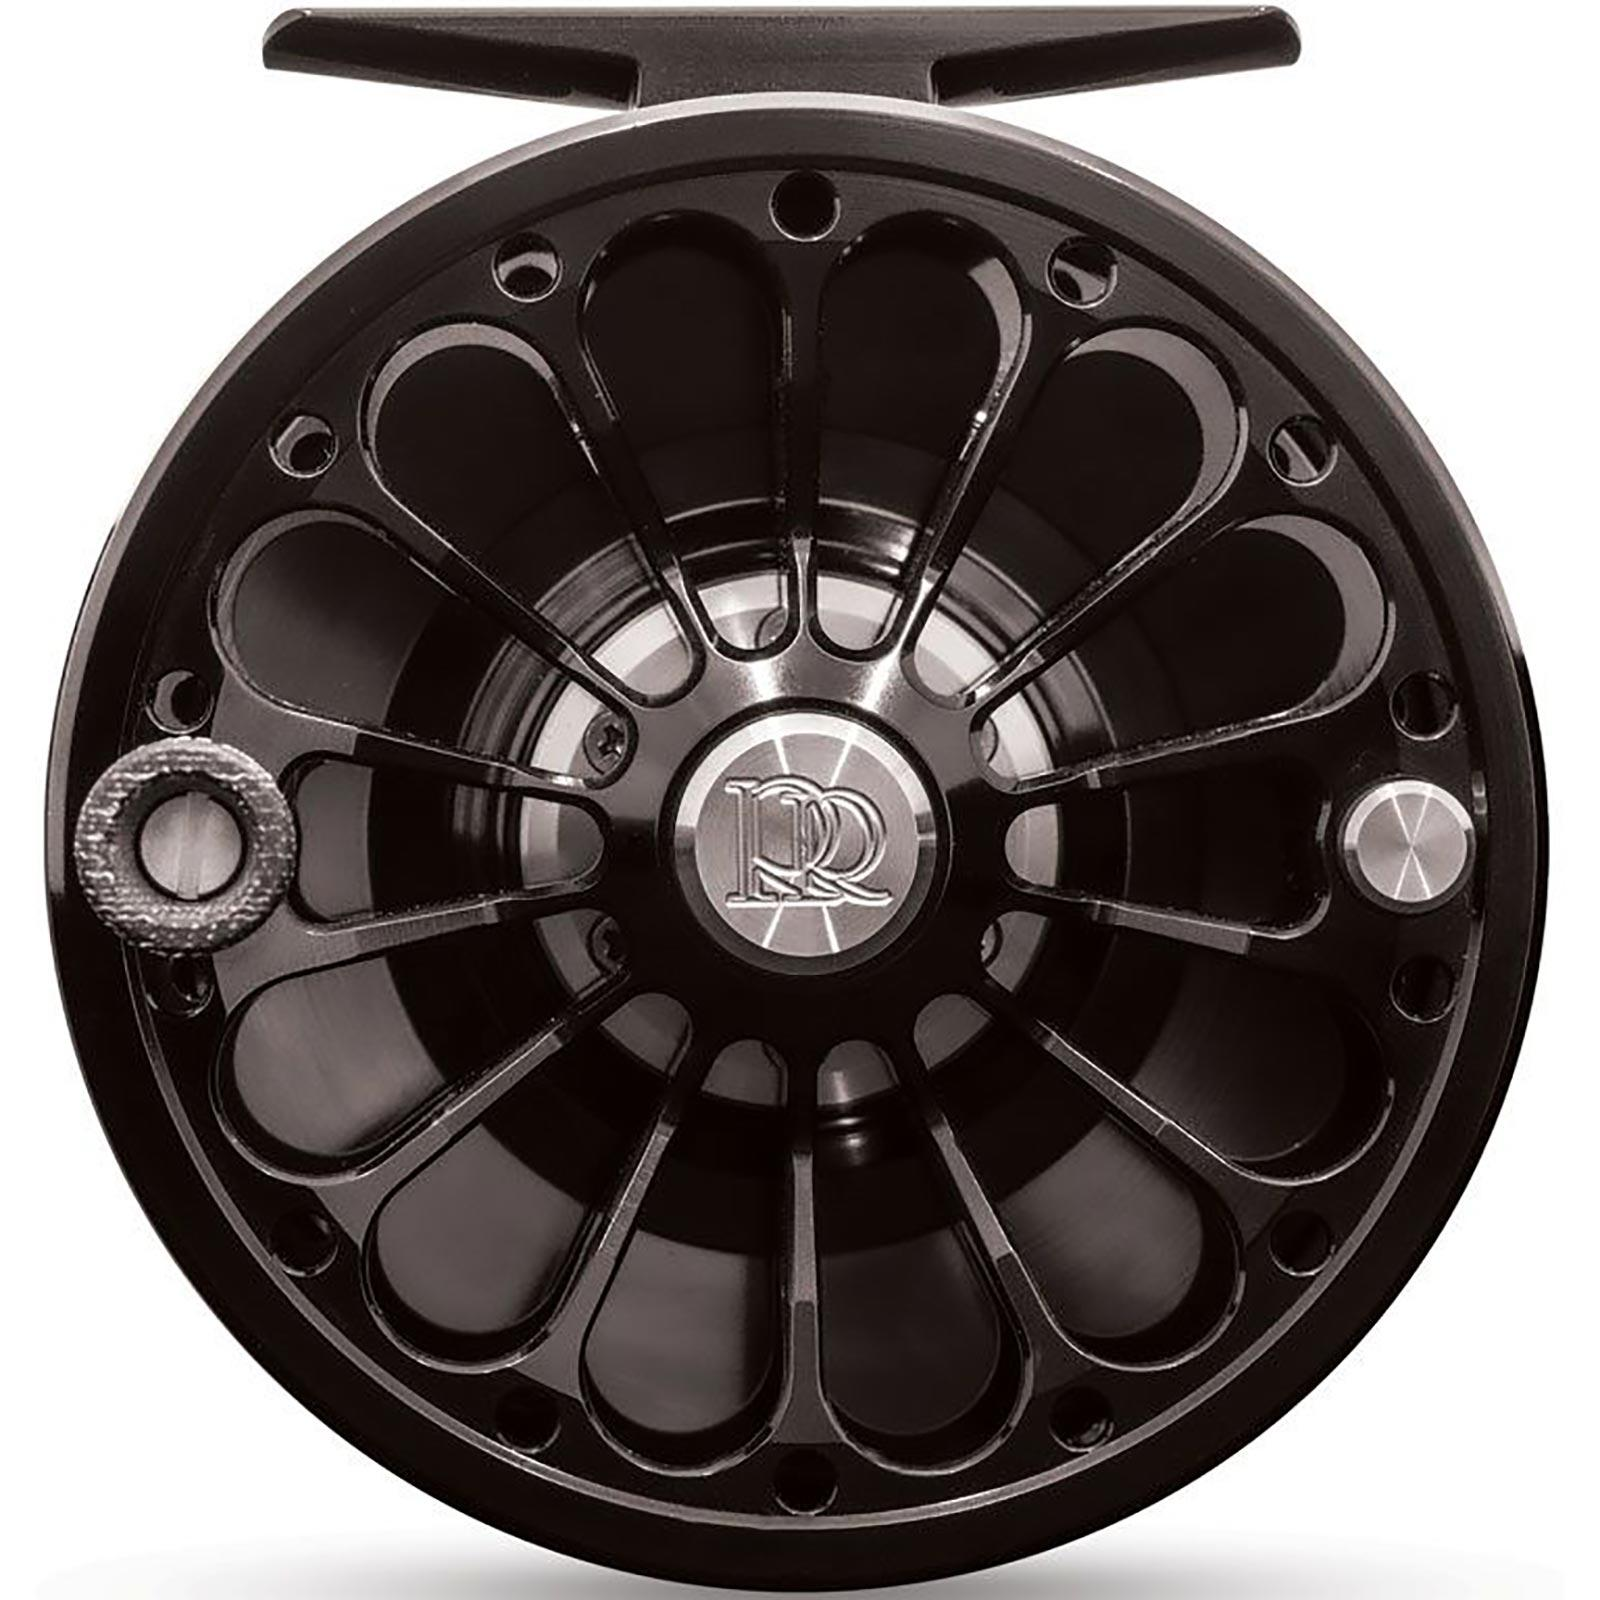 Ross Reels San Miguel Fly Reel